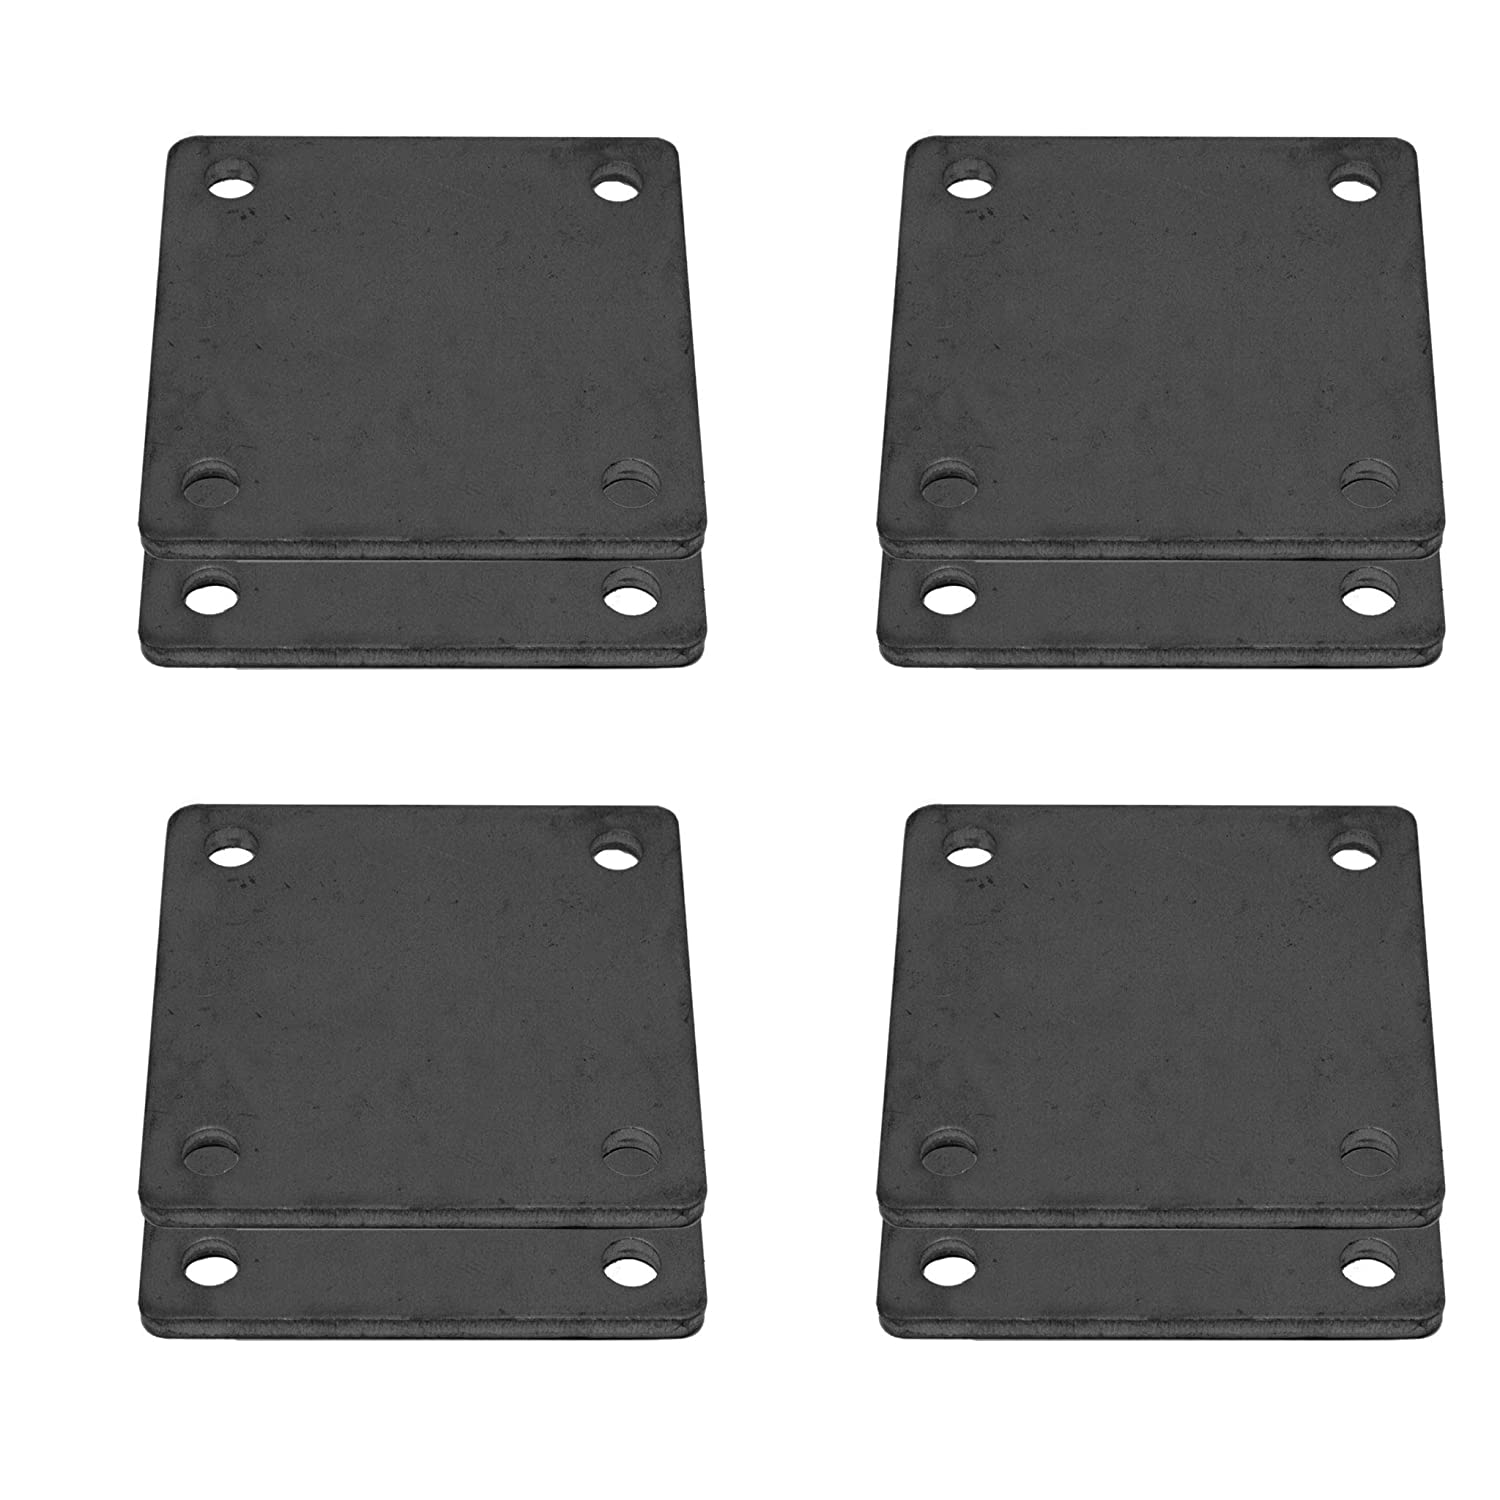 8 Pcs of Hot Rolled Steel Selling rankings Base Plate Ro and Sale SALE% OFF with X 6